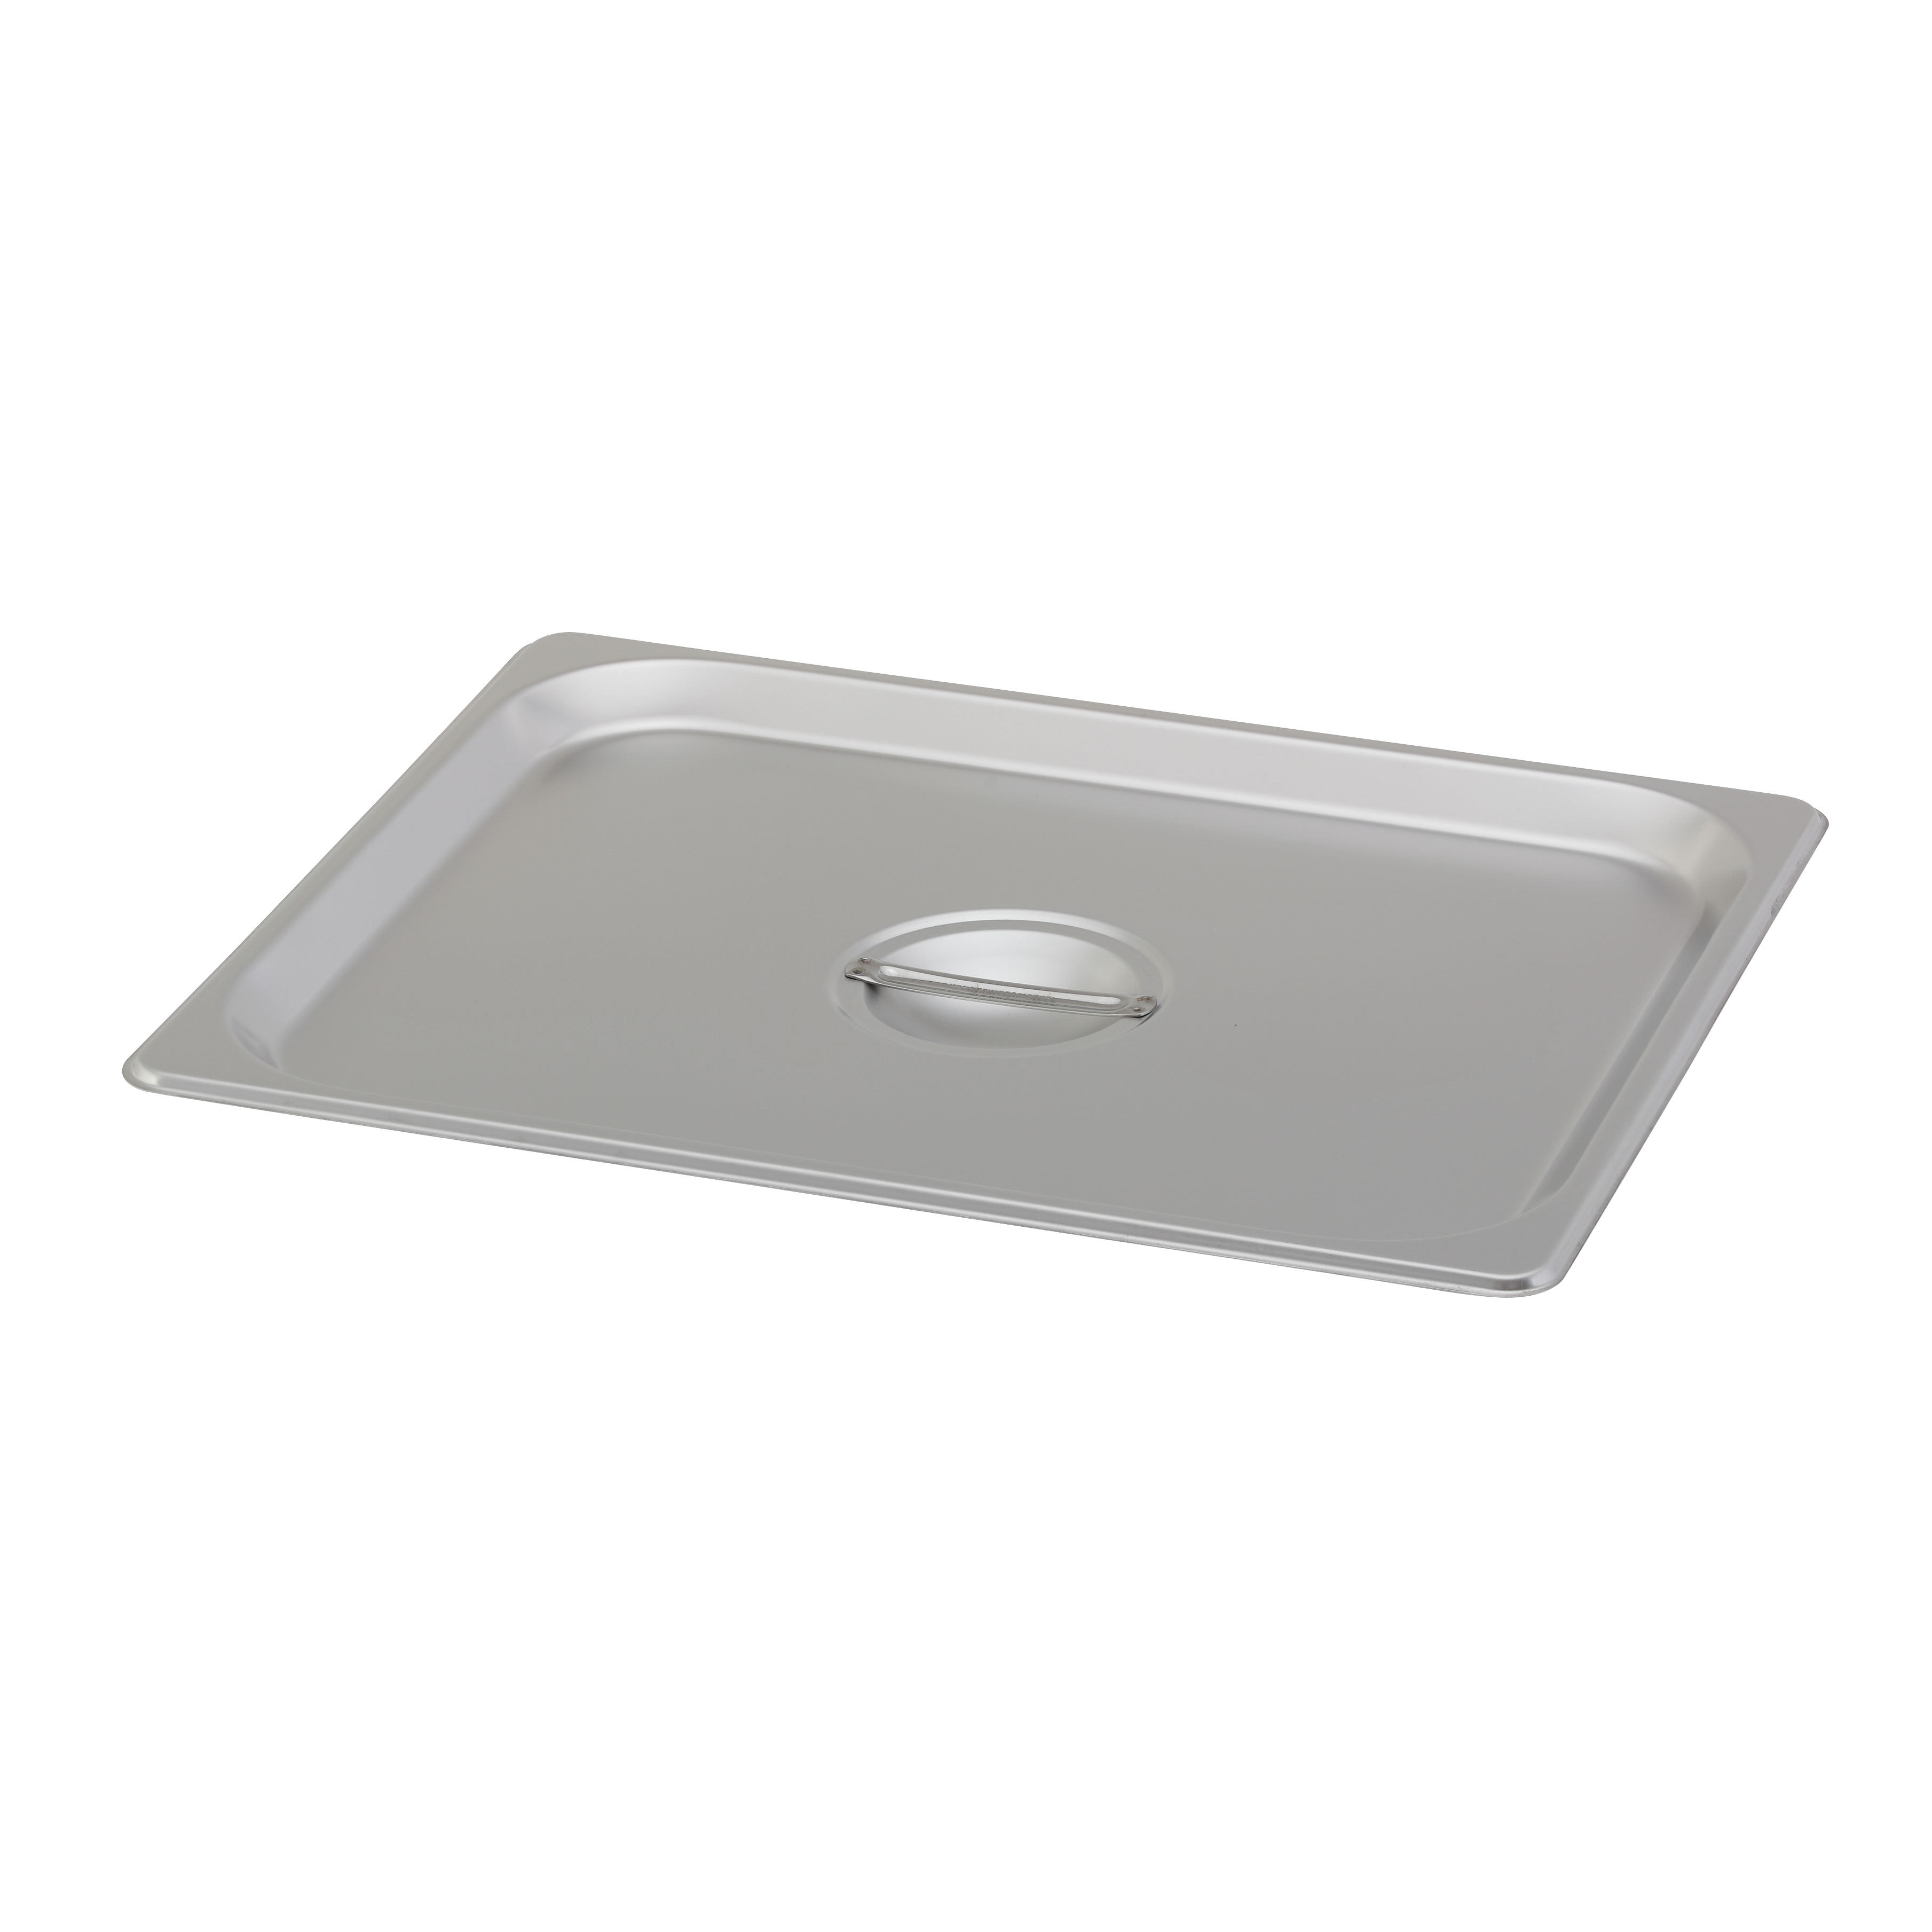 Royal Industries ROY STP 1200 1 steam table pans